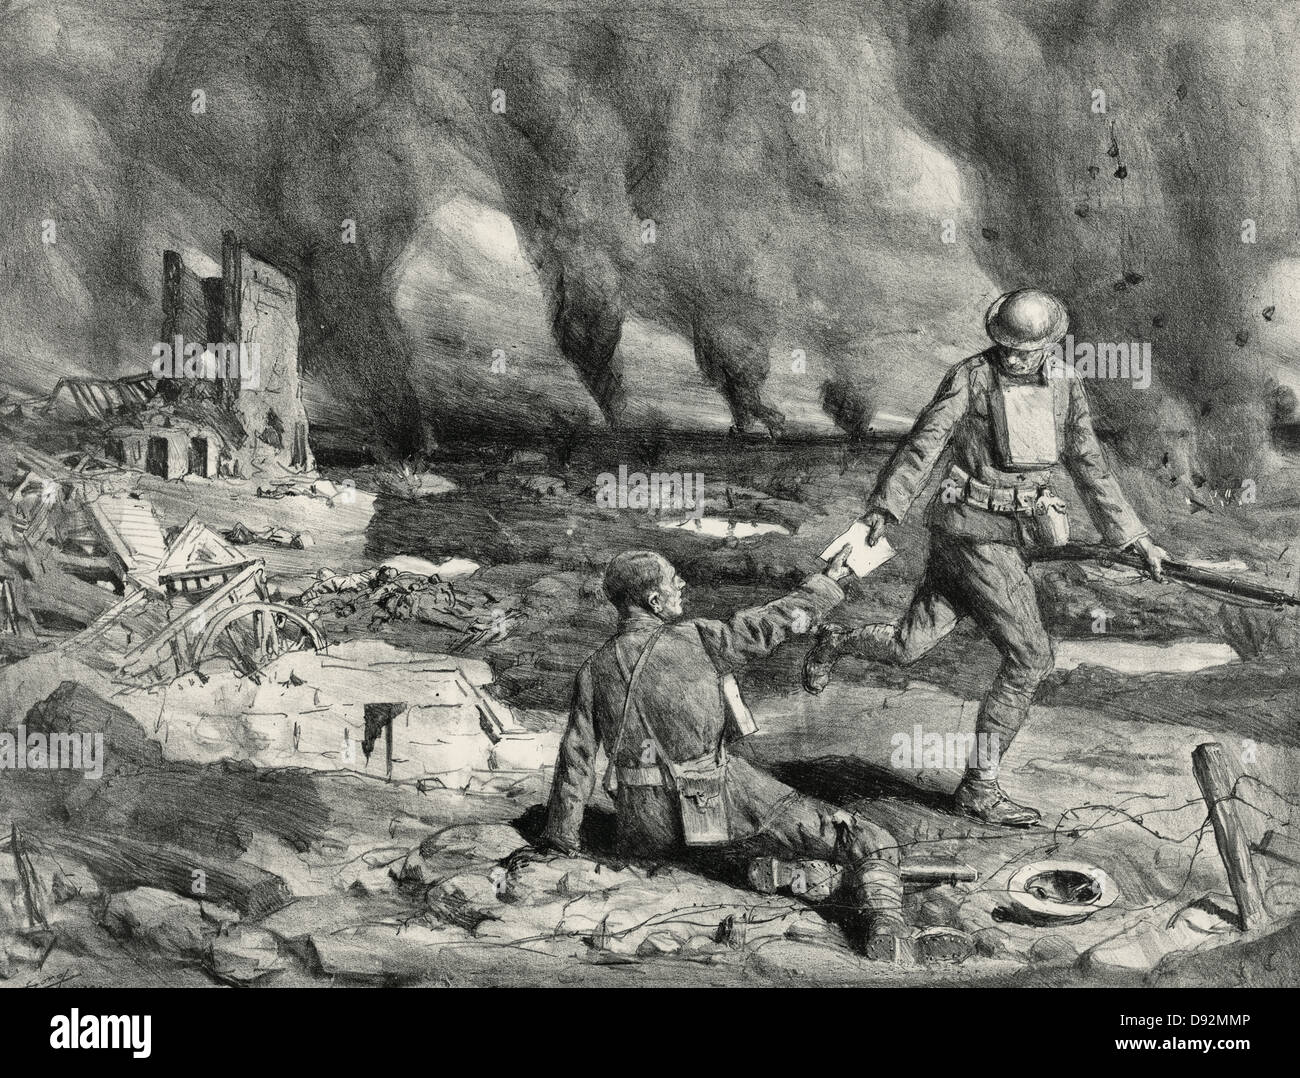 Runners working in a barrage, soldiers passing along a written message during a battle in World War I. - Stock Image